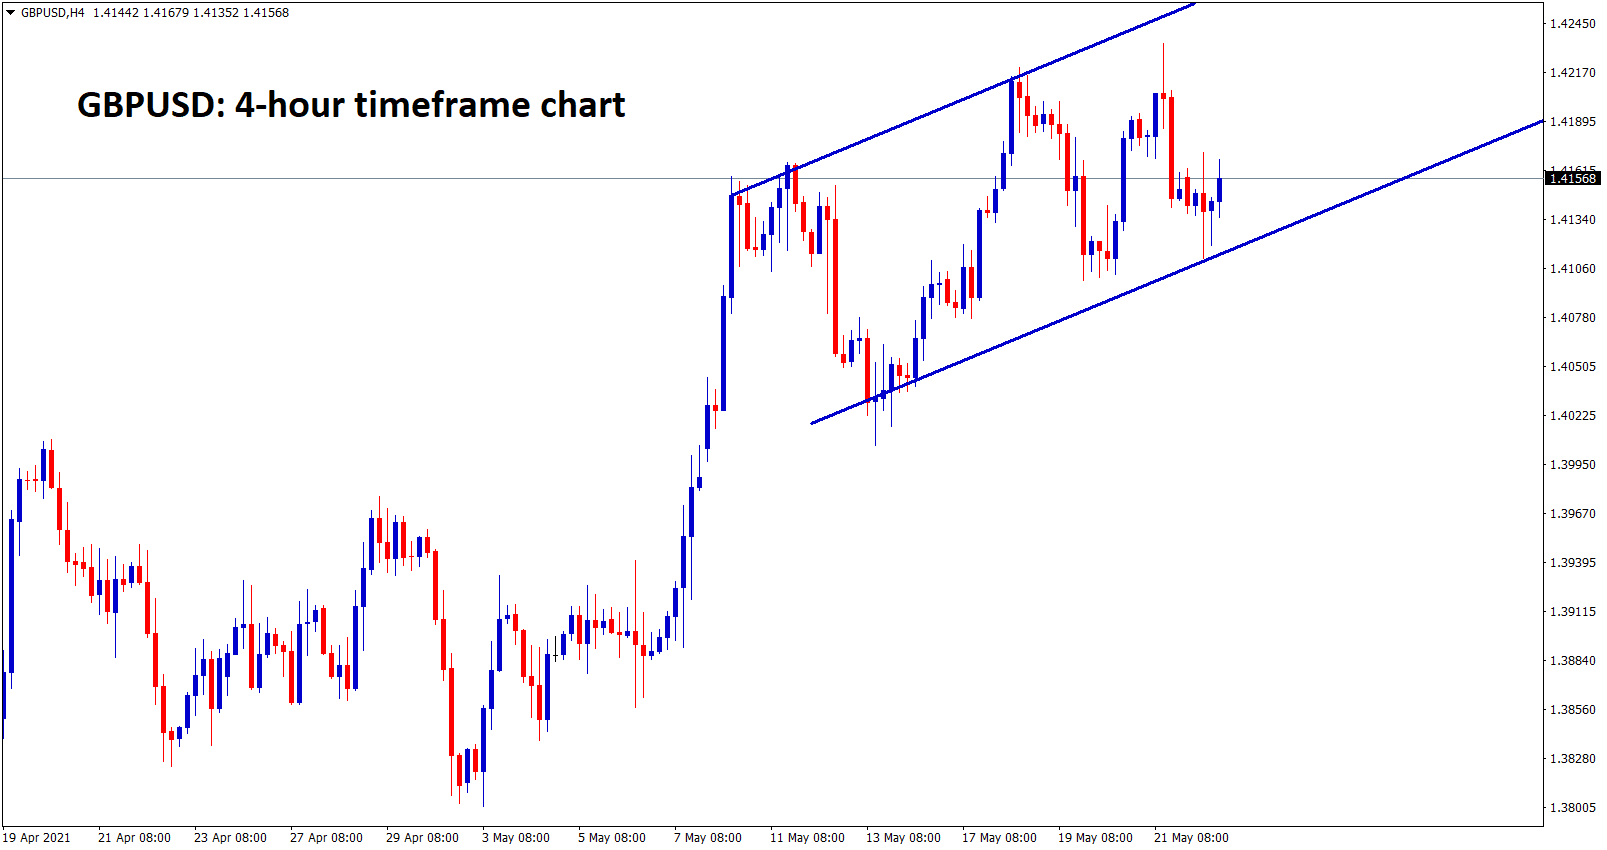 GBPUSD moving in a minor channel range.